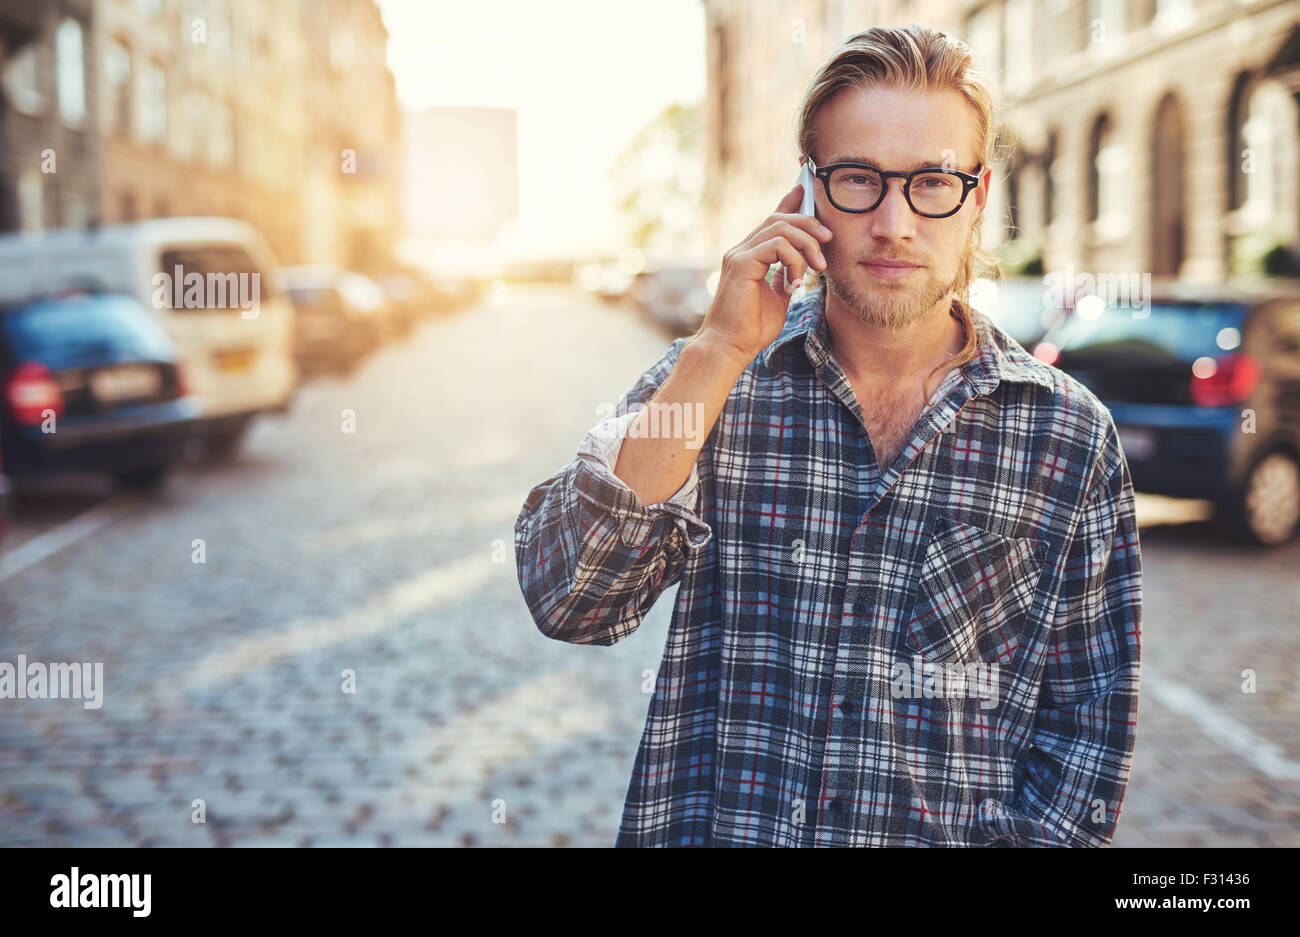 closeup portrait of young man talking on his cellphone in the city - Stock Image